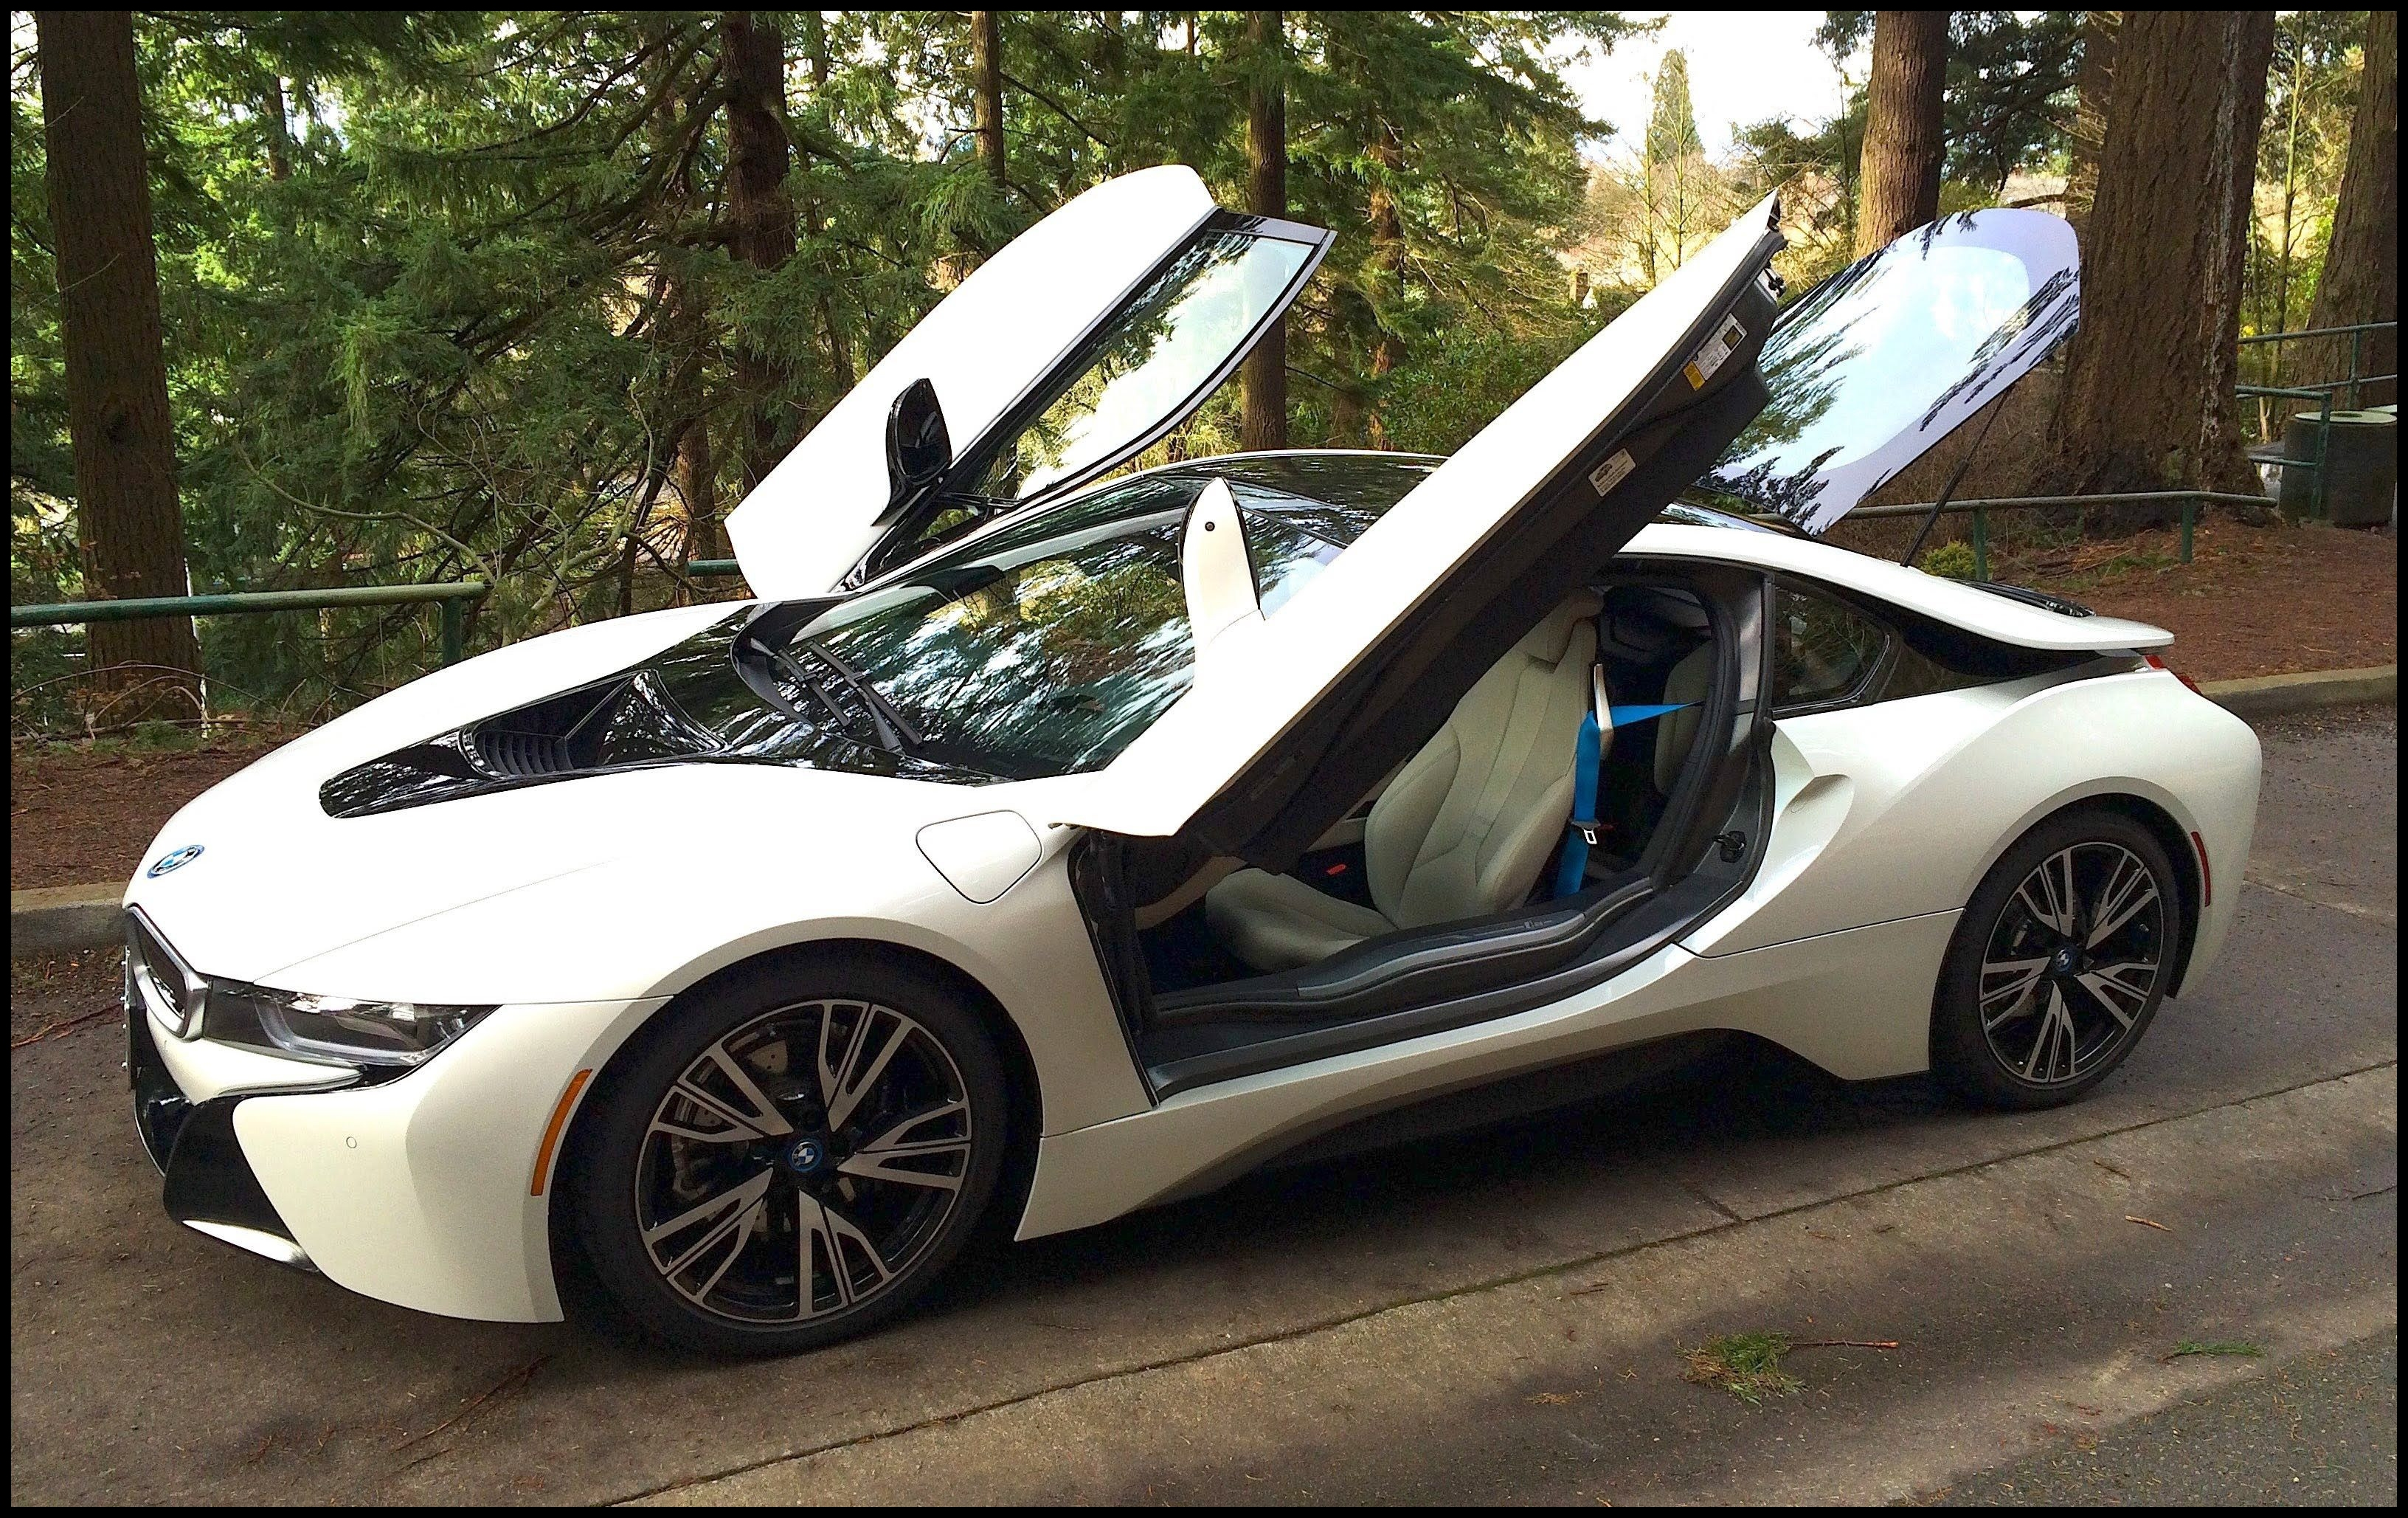 2019 Bmw I8 0 60 Luxury Awesome 2019 Bmw I8 0 60 Price Check More